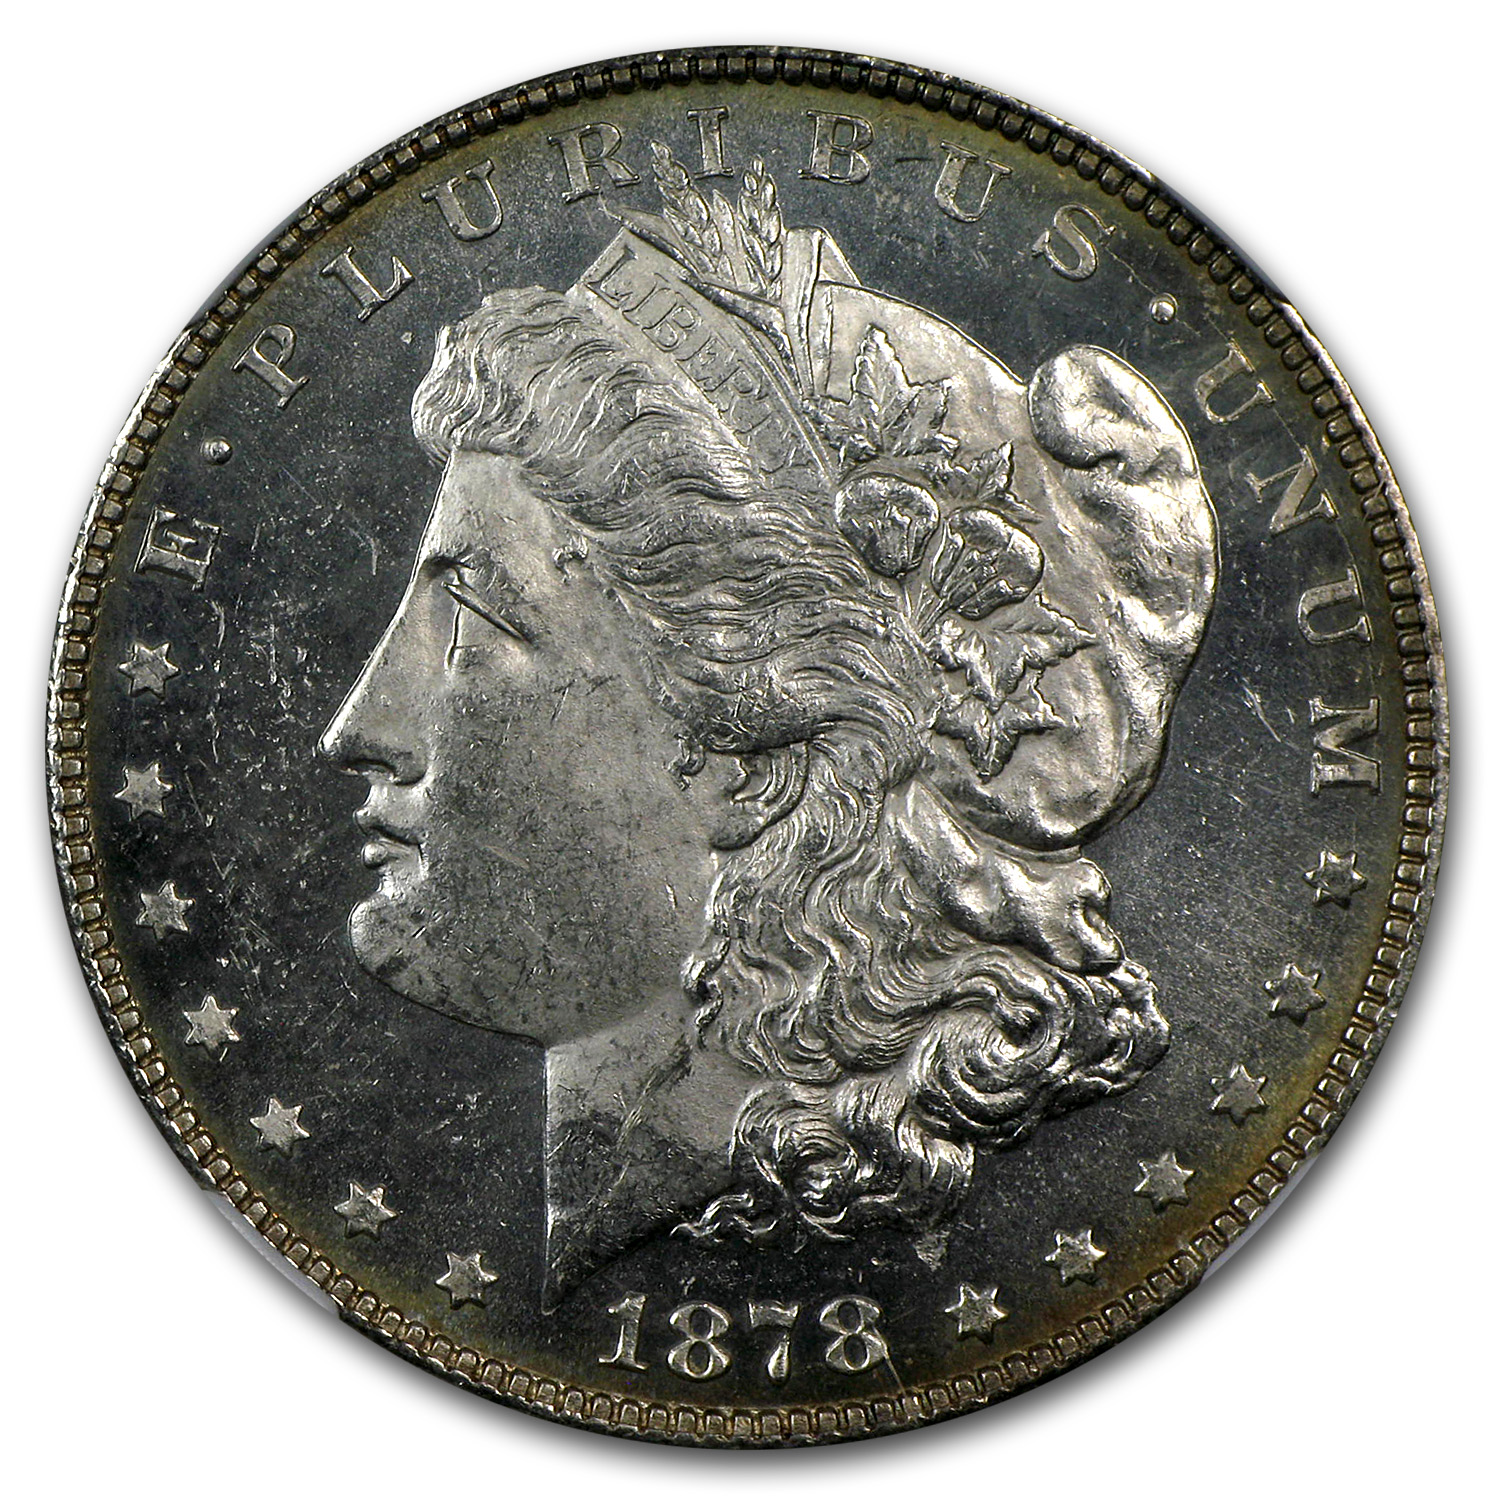 1878 Morgan Dollar - 7 TF Rev of 1878 - MS-63 PL Proof Like NGC